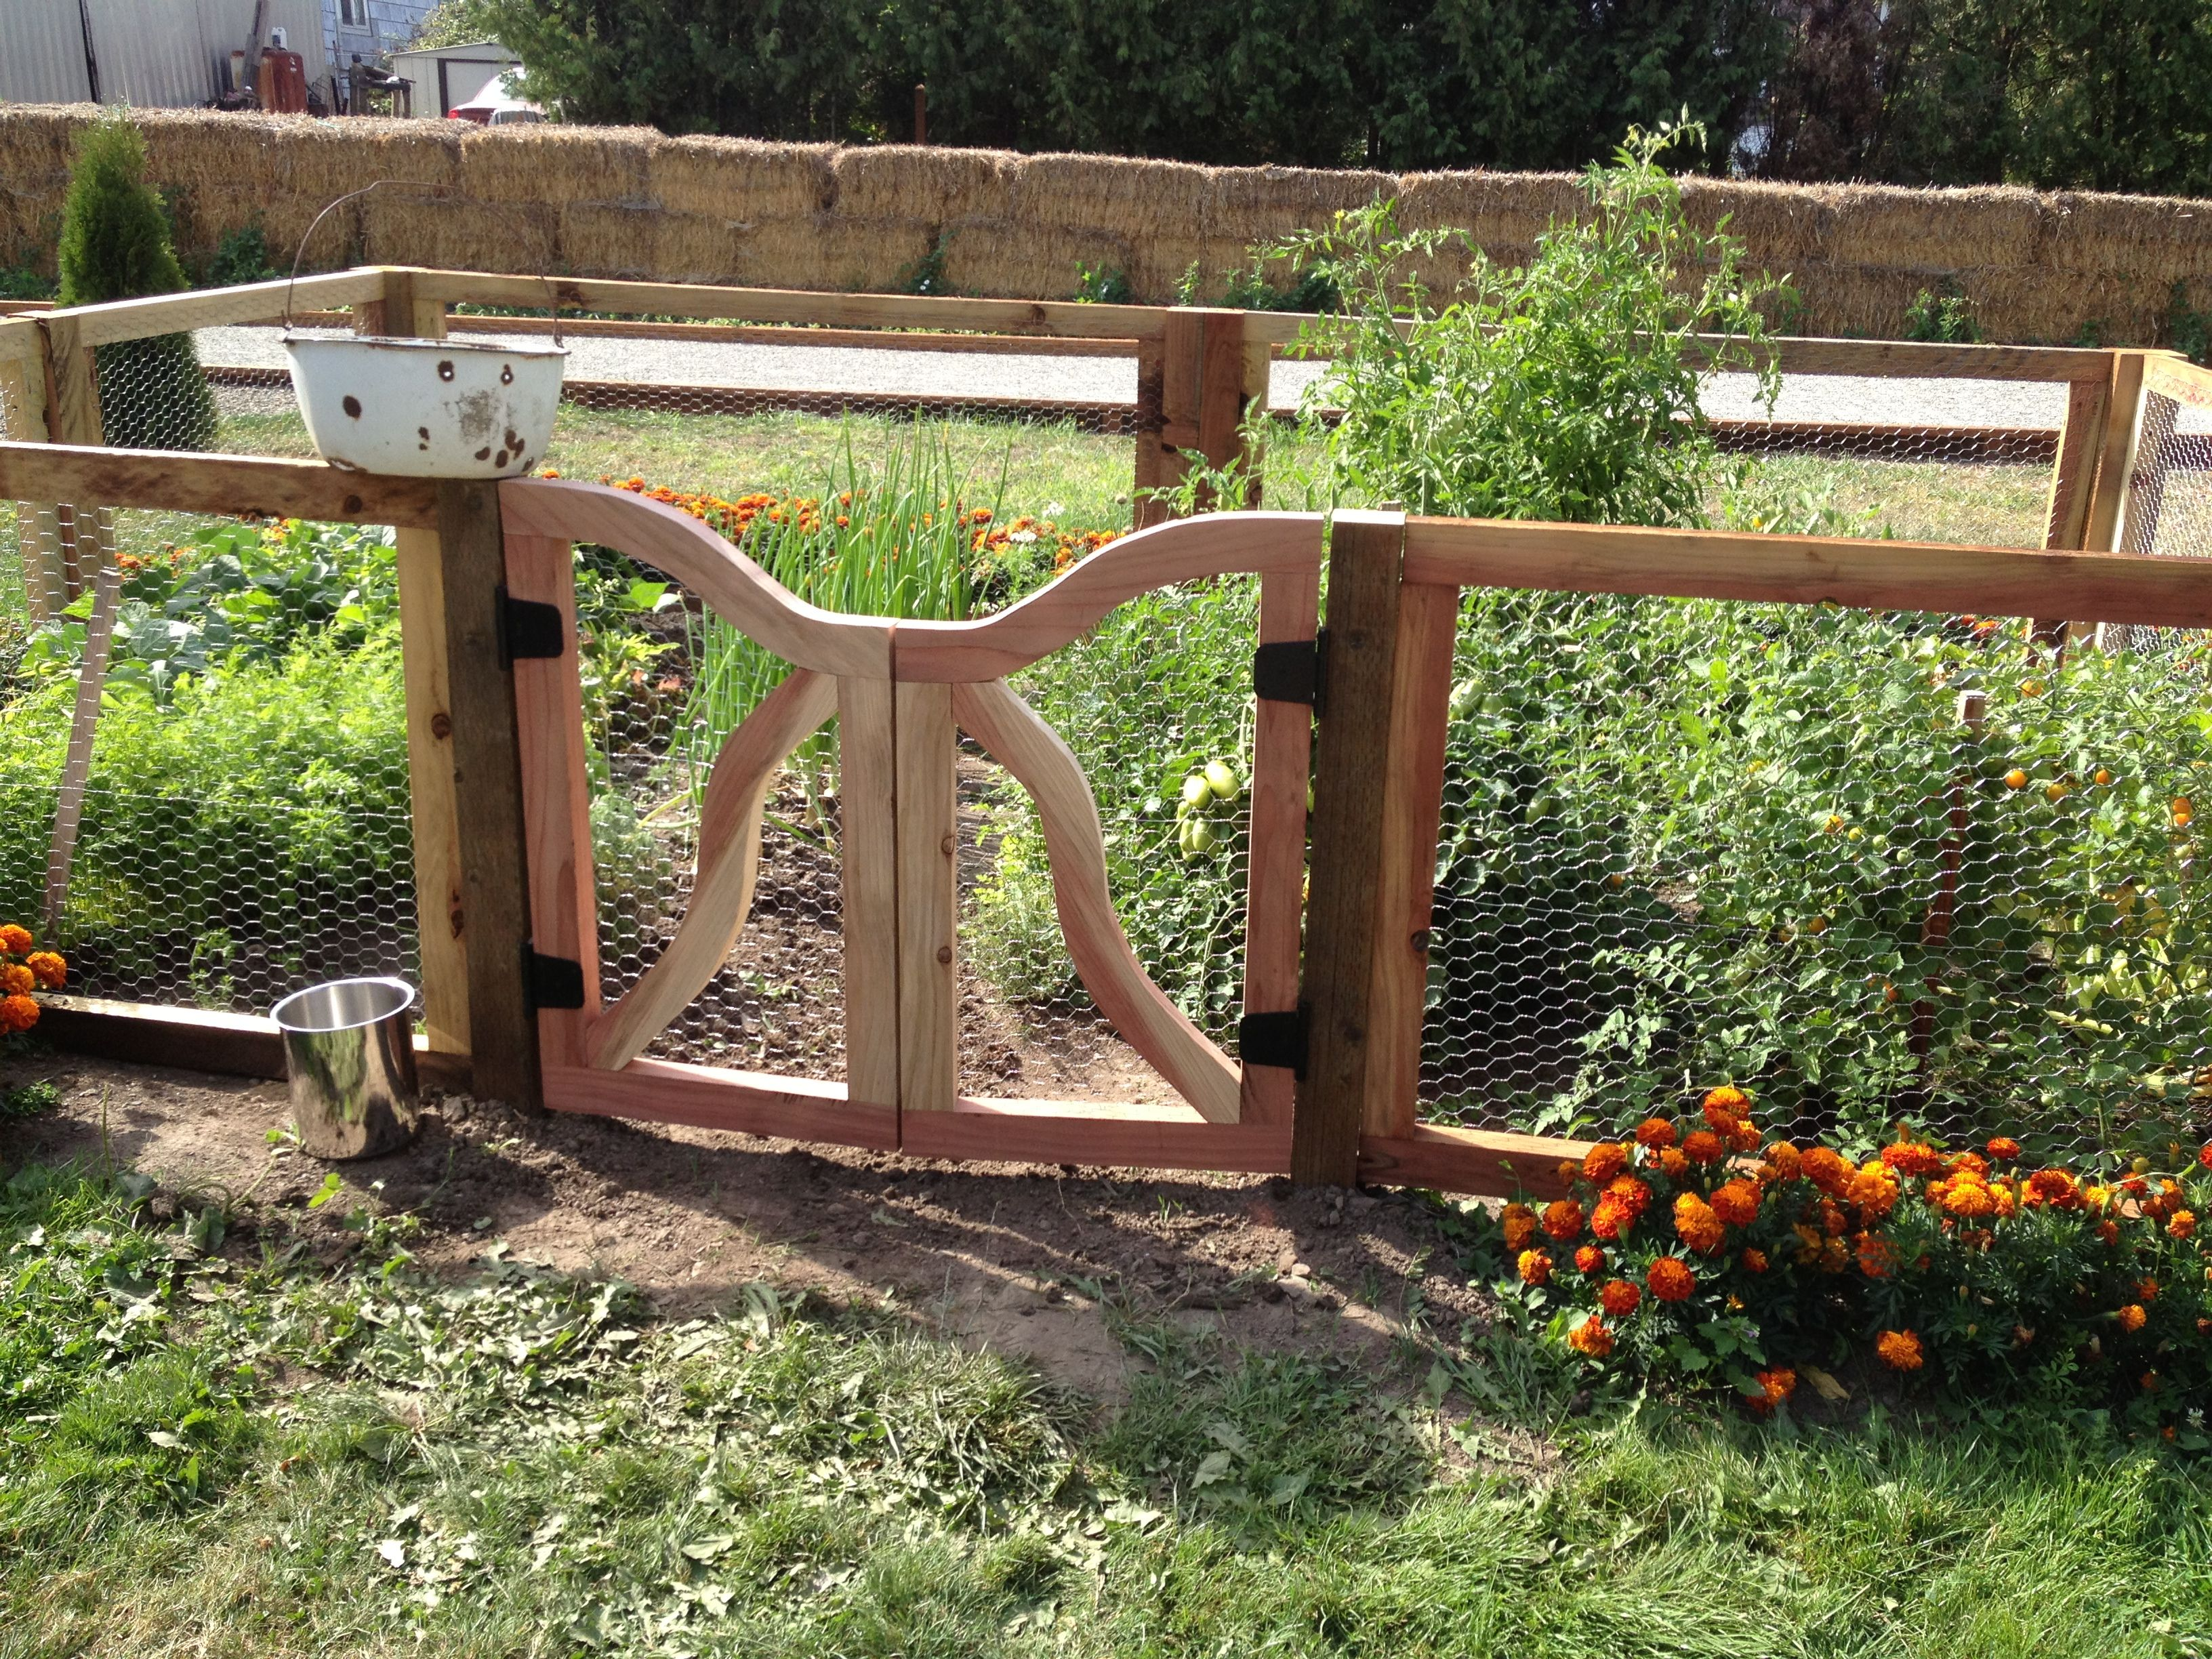 Rustic Garden Gate And Fence Lawn